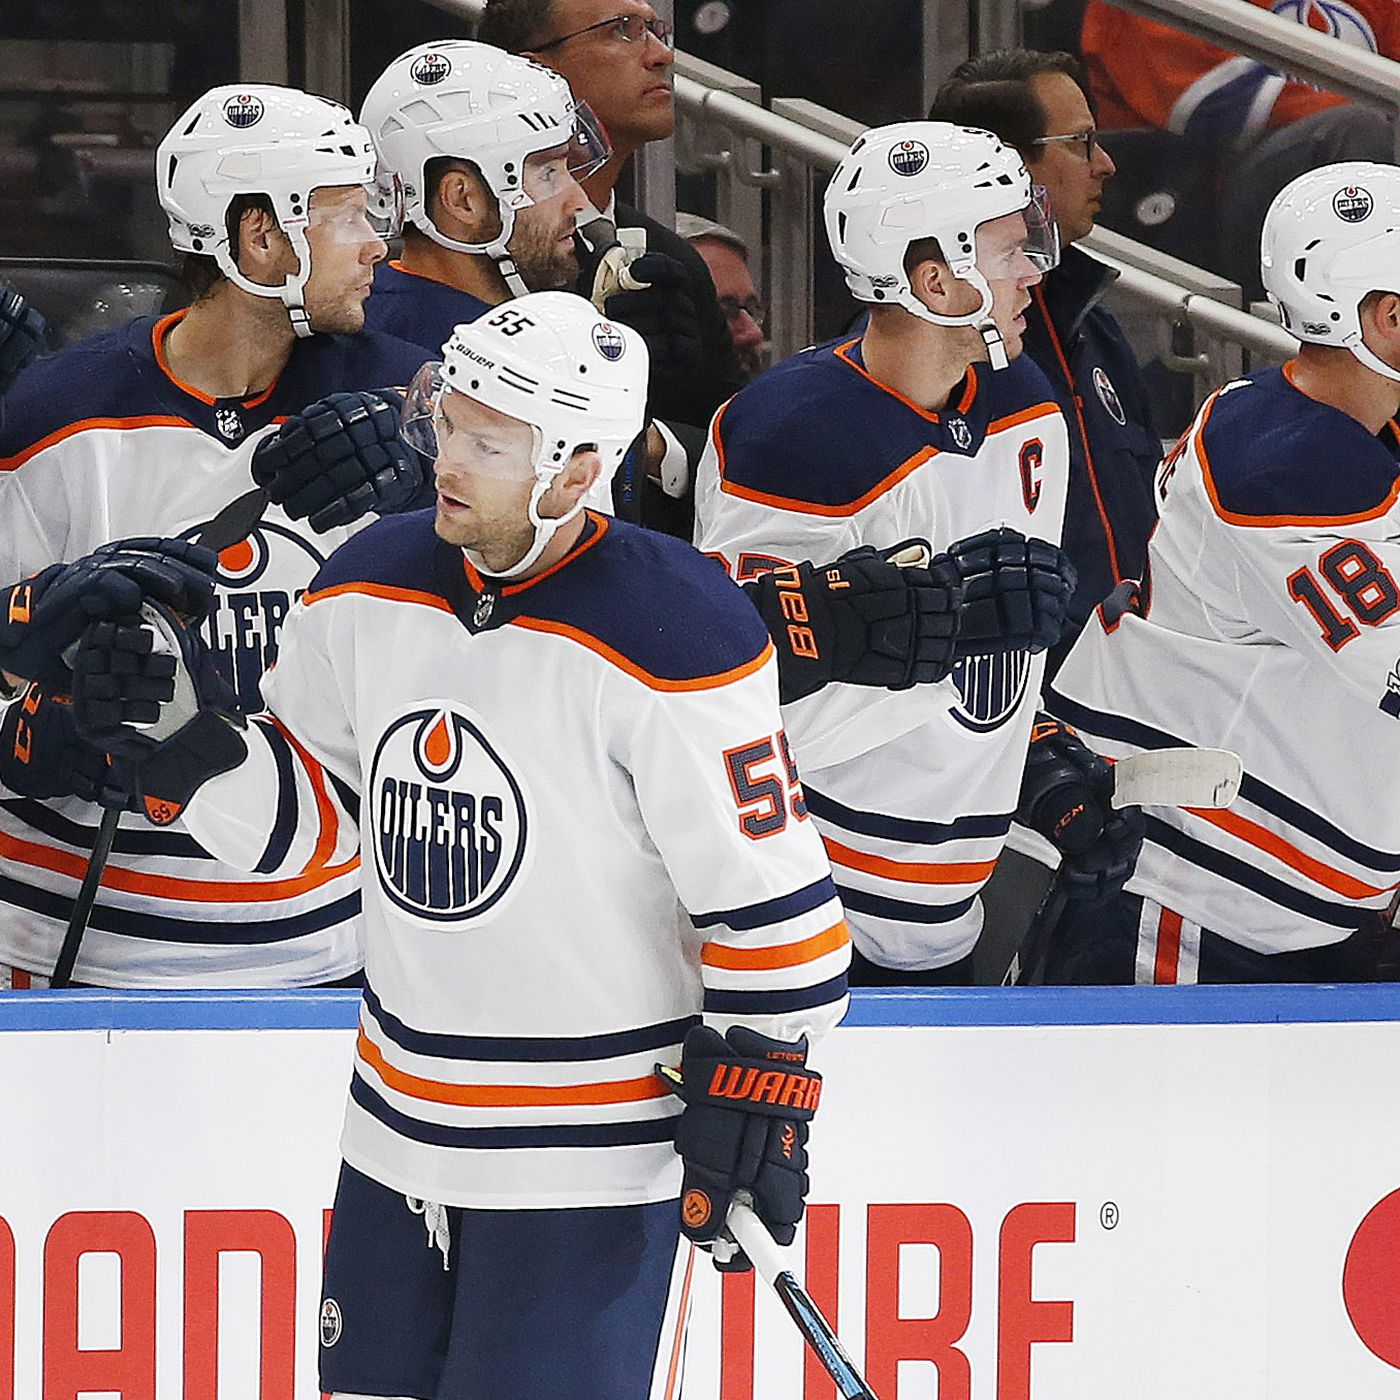 81eb7aa087c Copper And Blue Roundtable  2017-18 Season Preview - The Copper   Blue